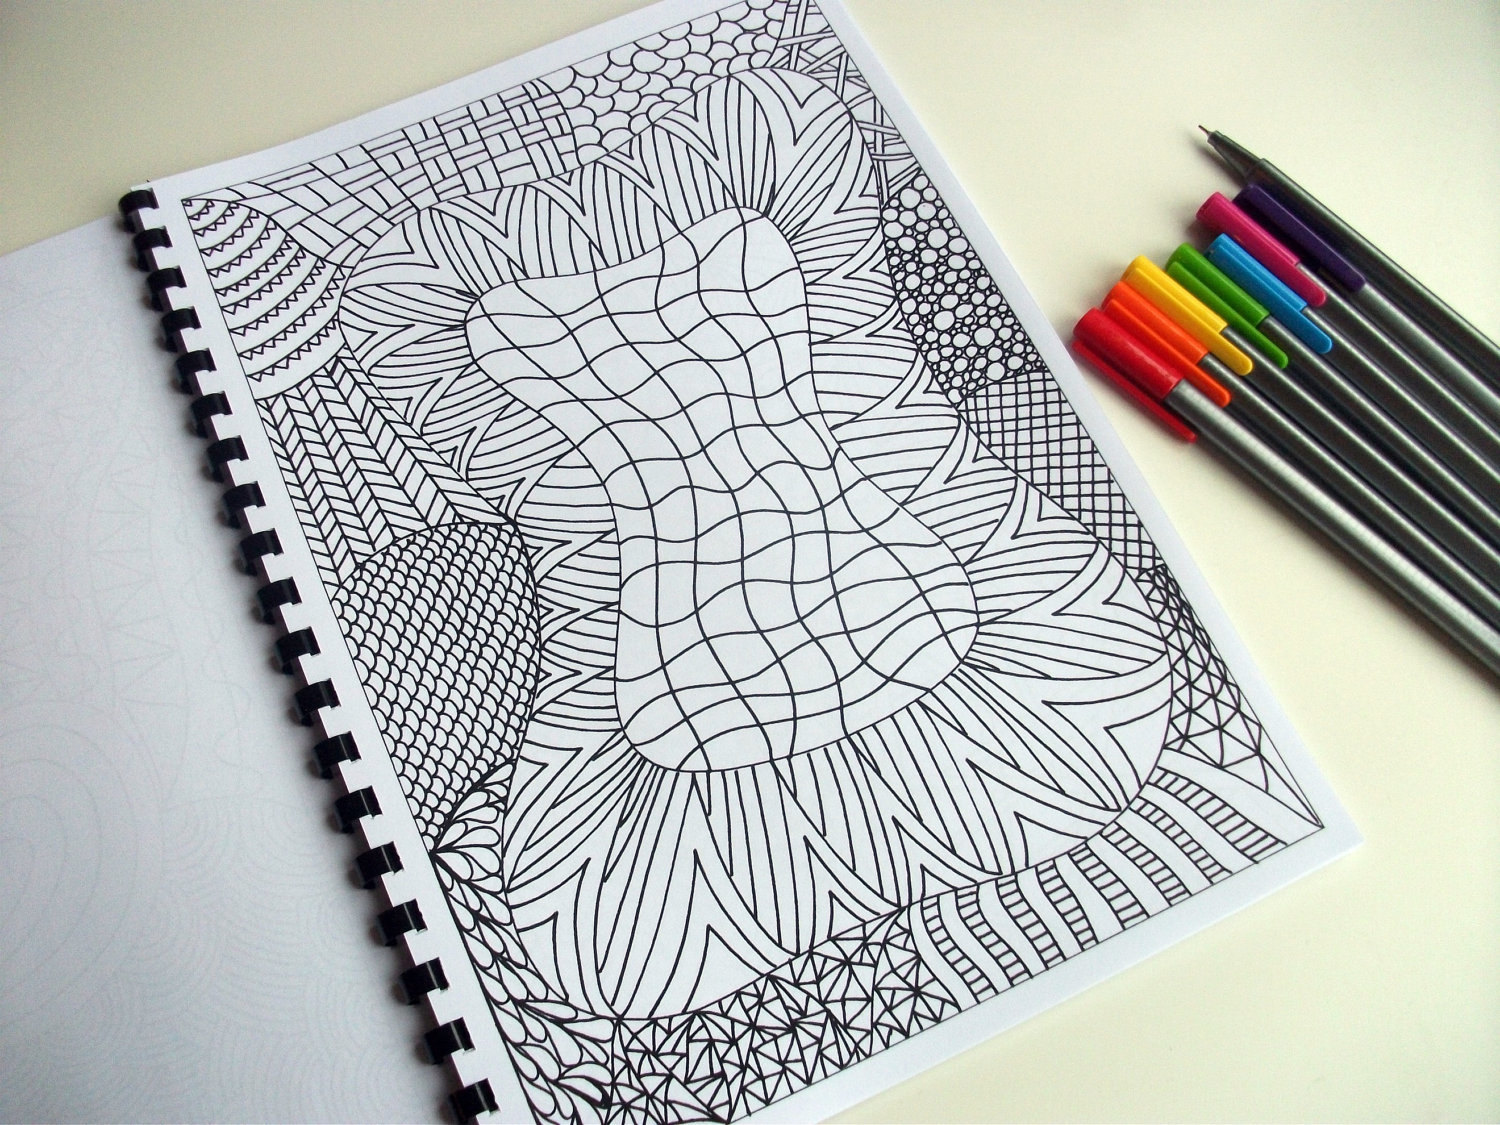 pdf coloring page zentangle inspired abstract coloring etsy. Black Bedroom Furniture Sets. Home Design Ideas